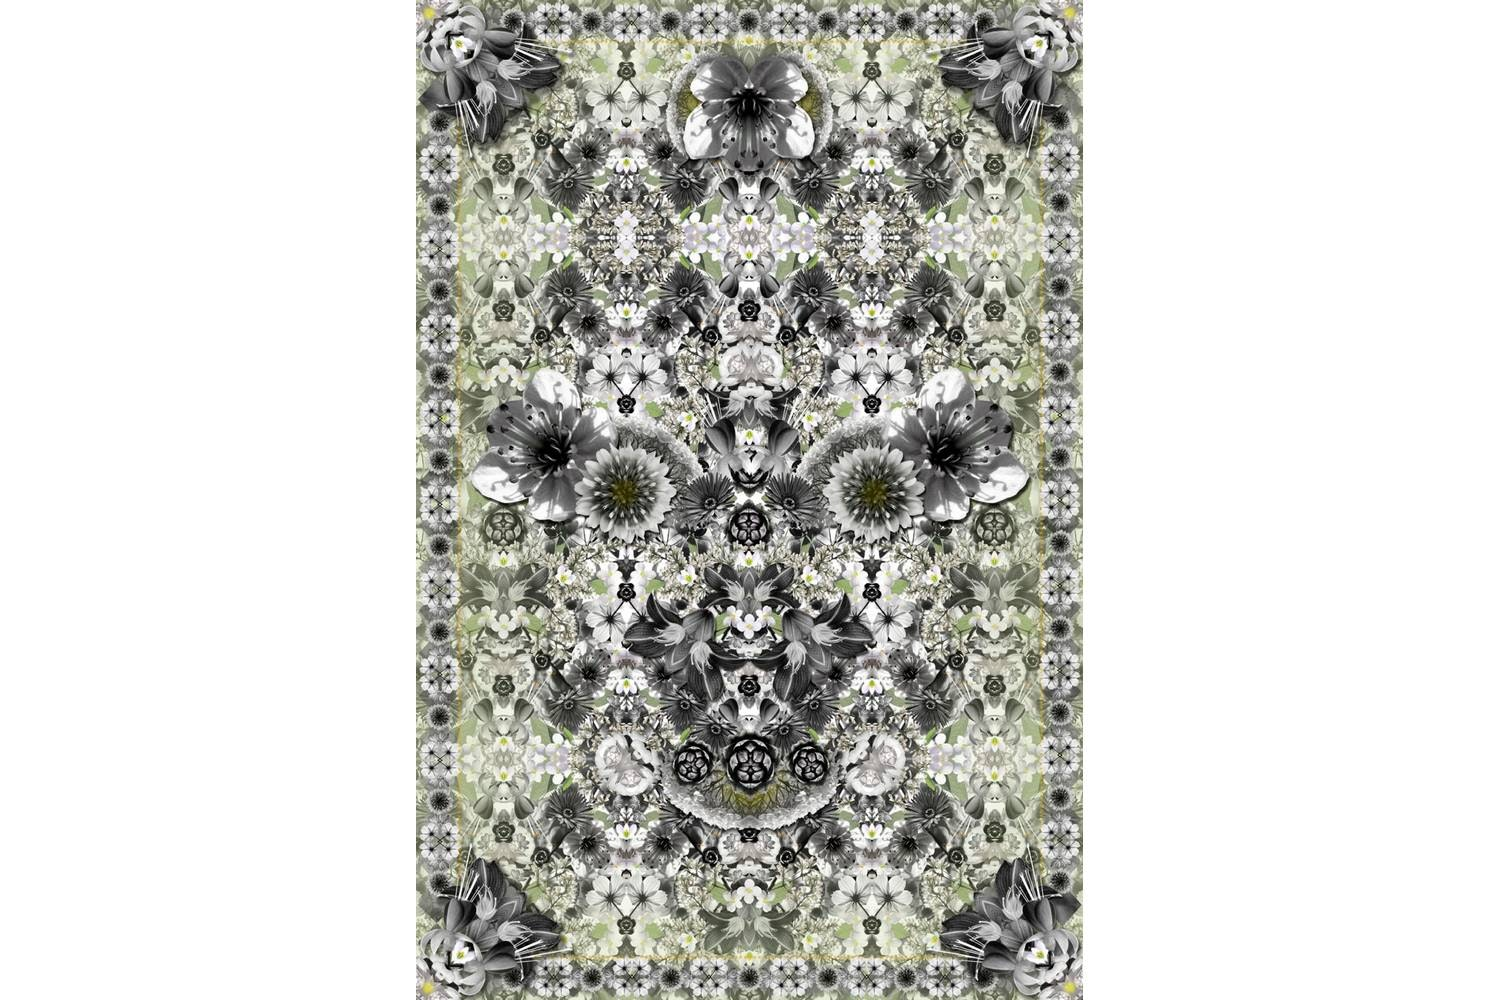 Eden King Rug by Marcel Wanders for Moooi Carpets